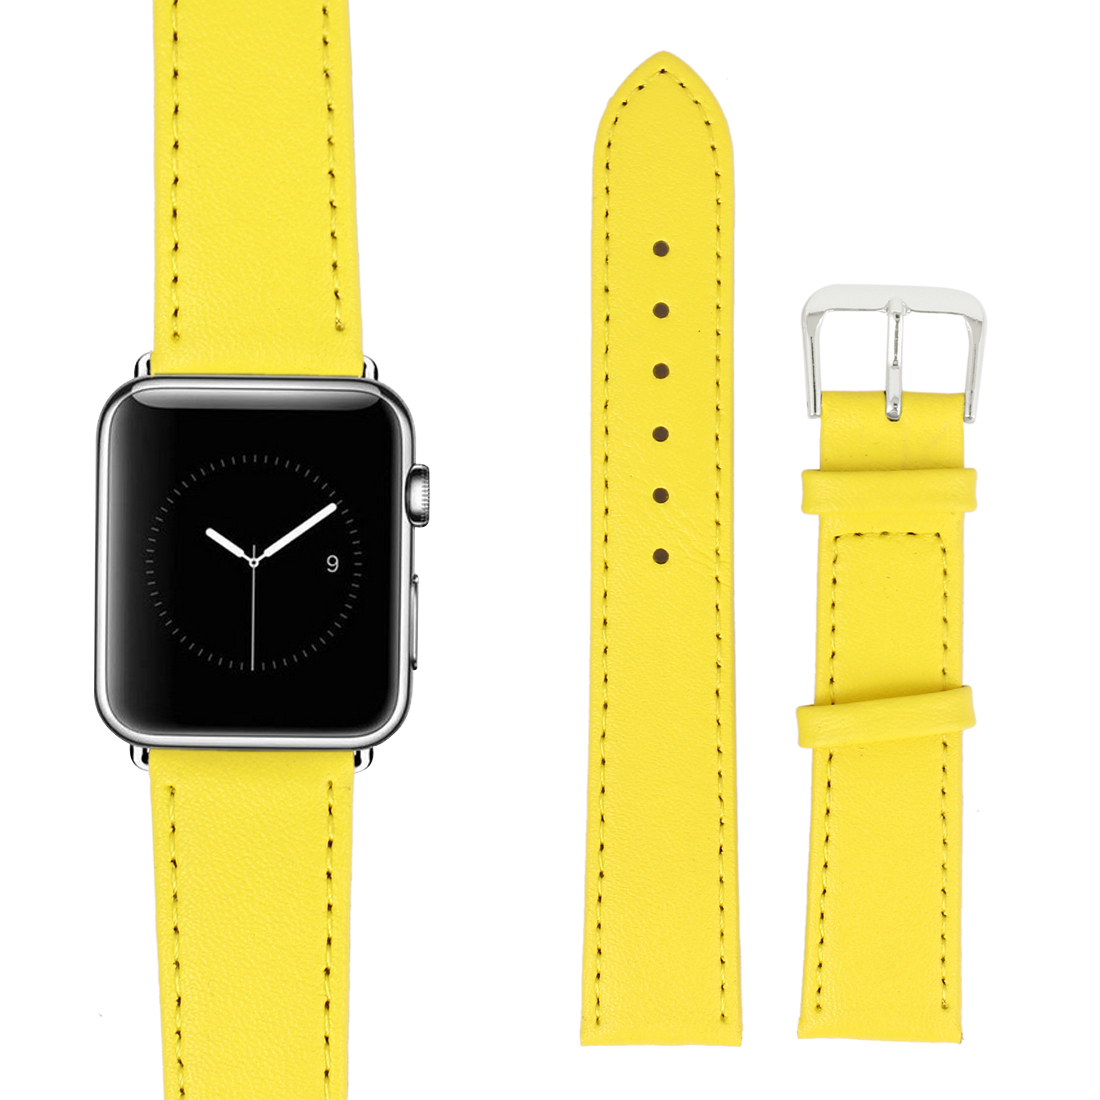 Faux Leather Stainless Steel Buckle Mens Wrist Watch Band Strap Belt Yellow